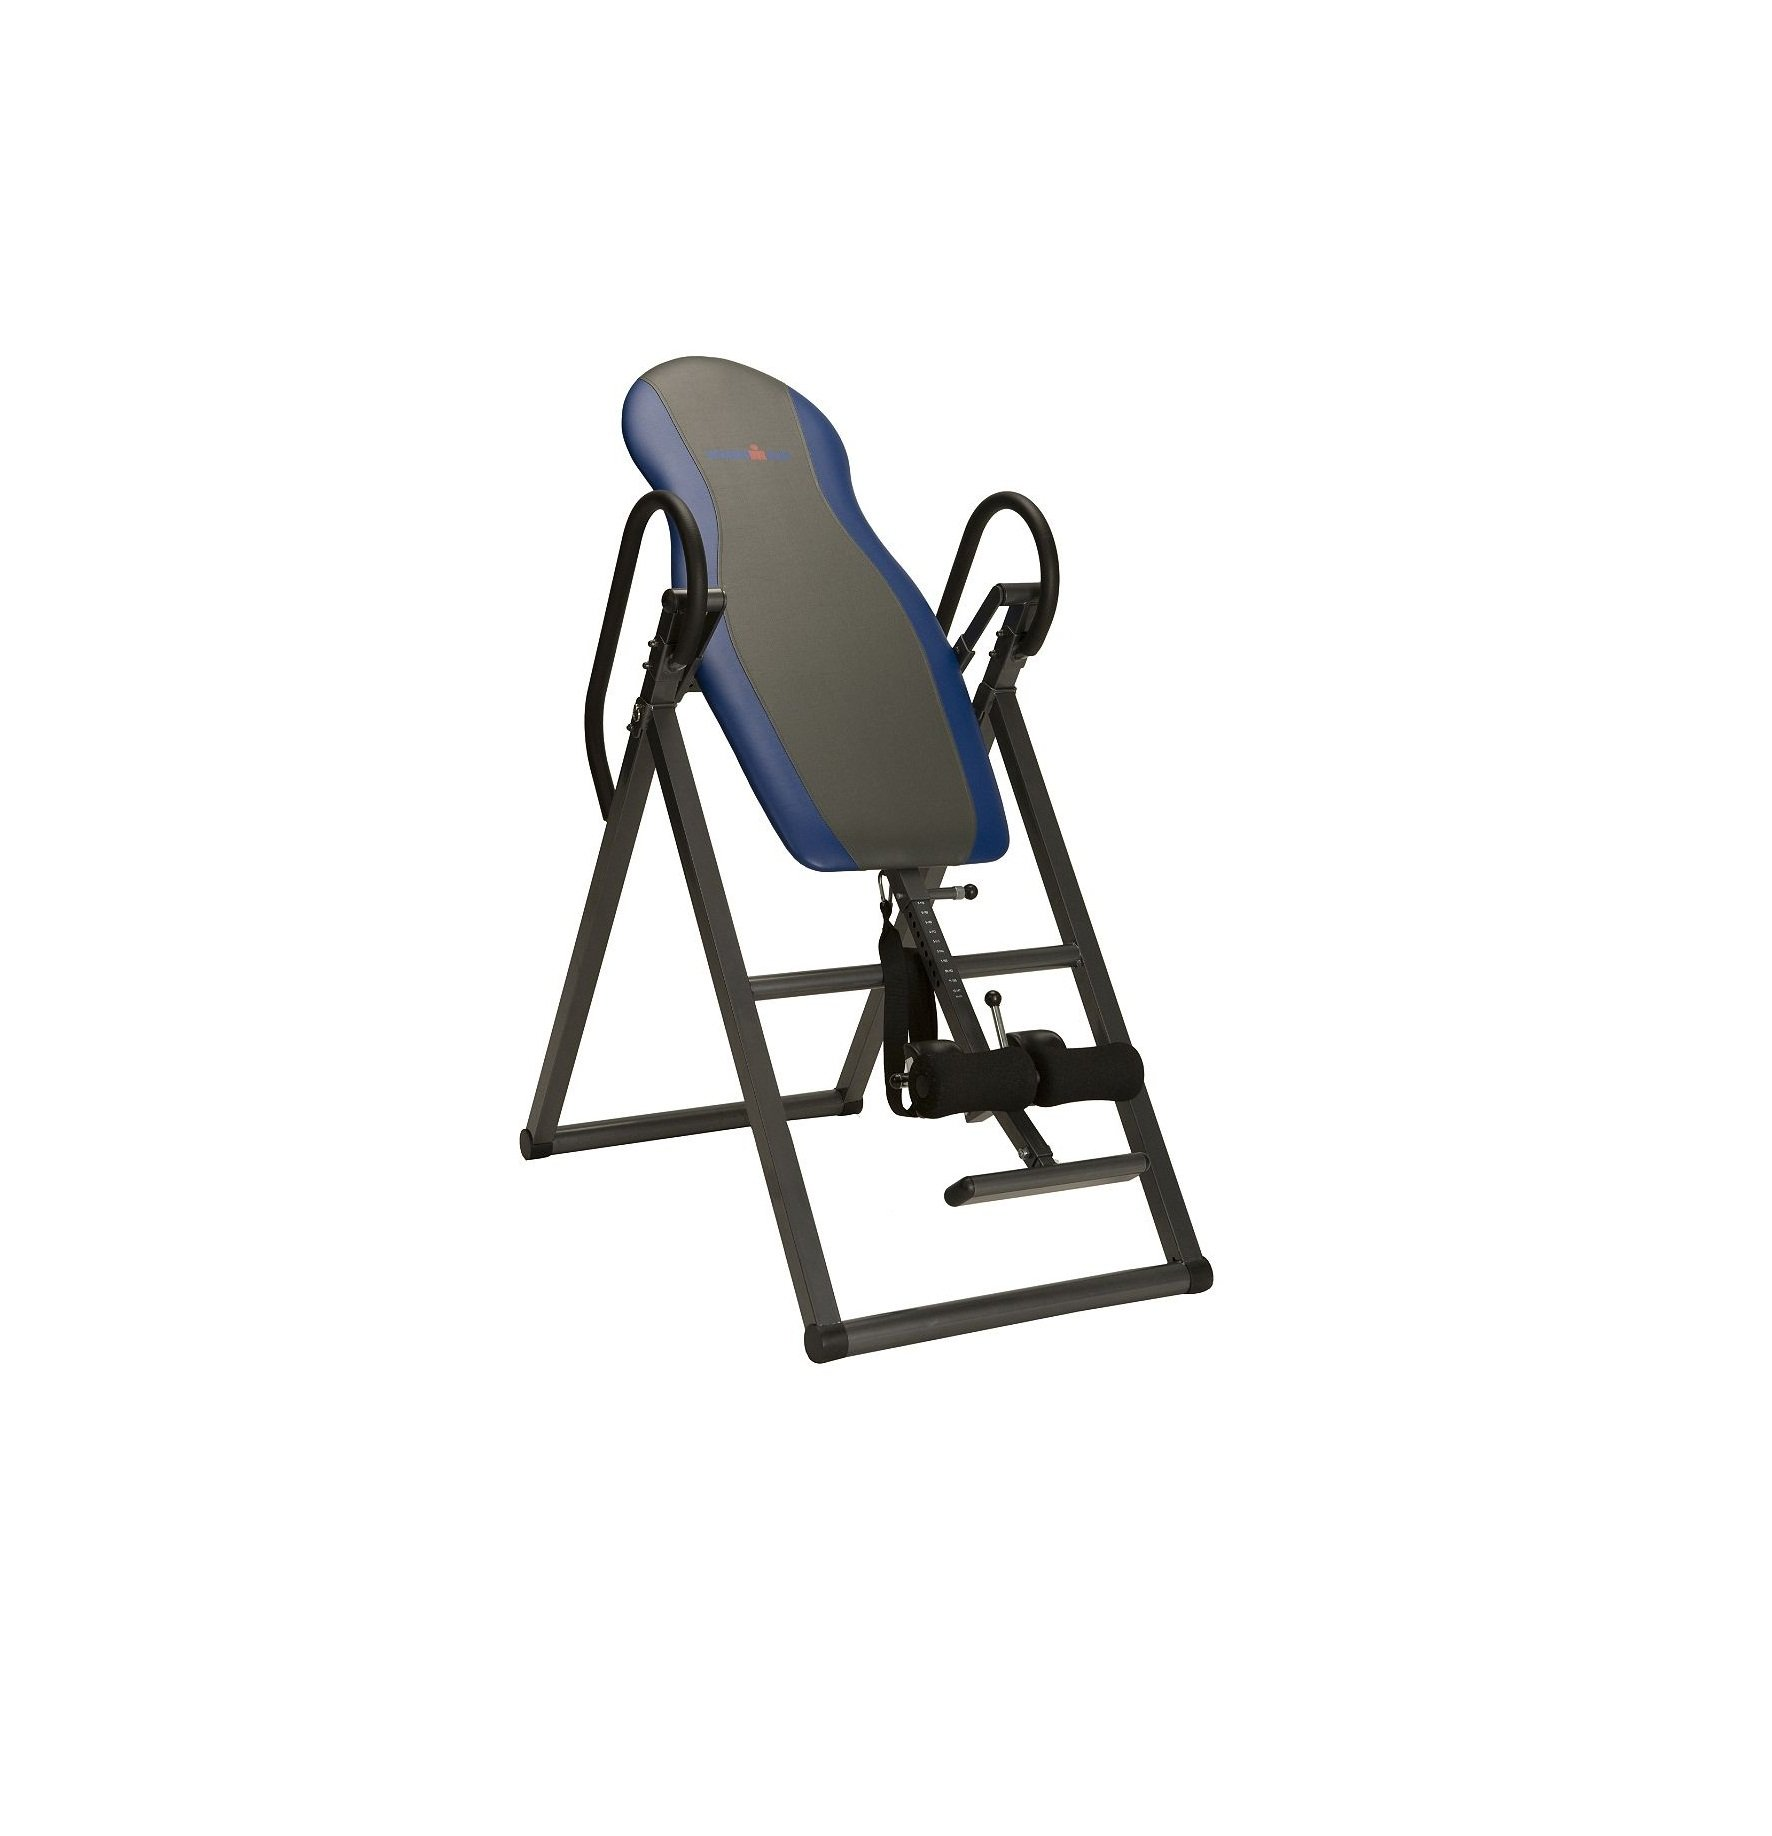 Ironman Relax 550 Inversion Table, Capacity-275 Lbs, 46.4''L x 27''W x 57''H (5501) by IRONMAN fitness